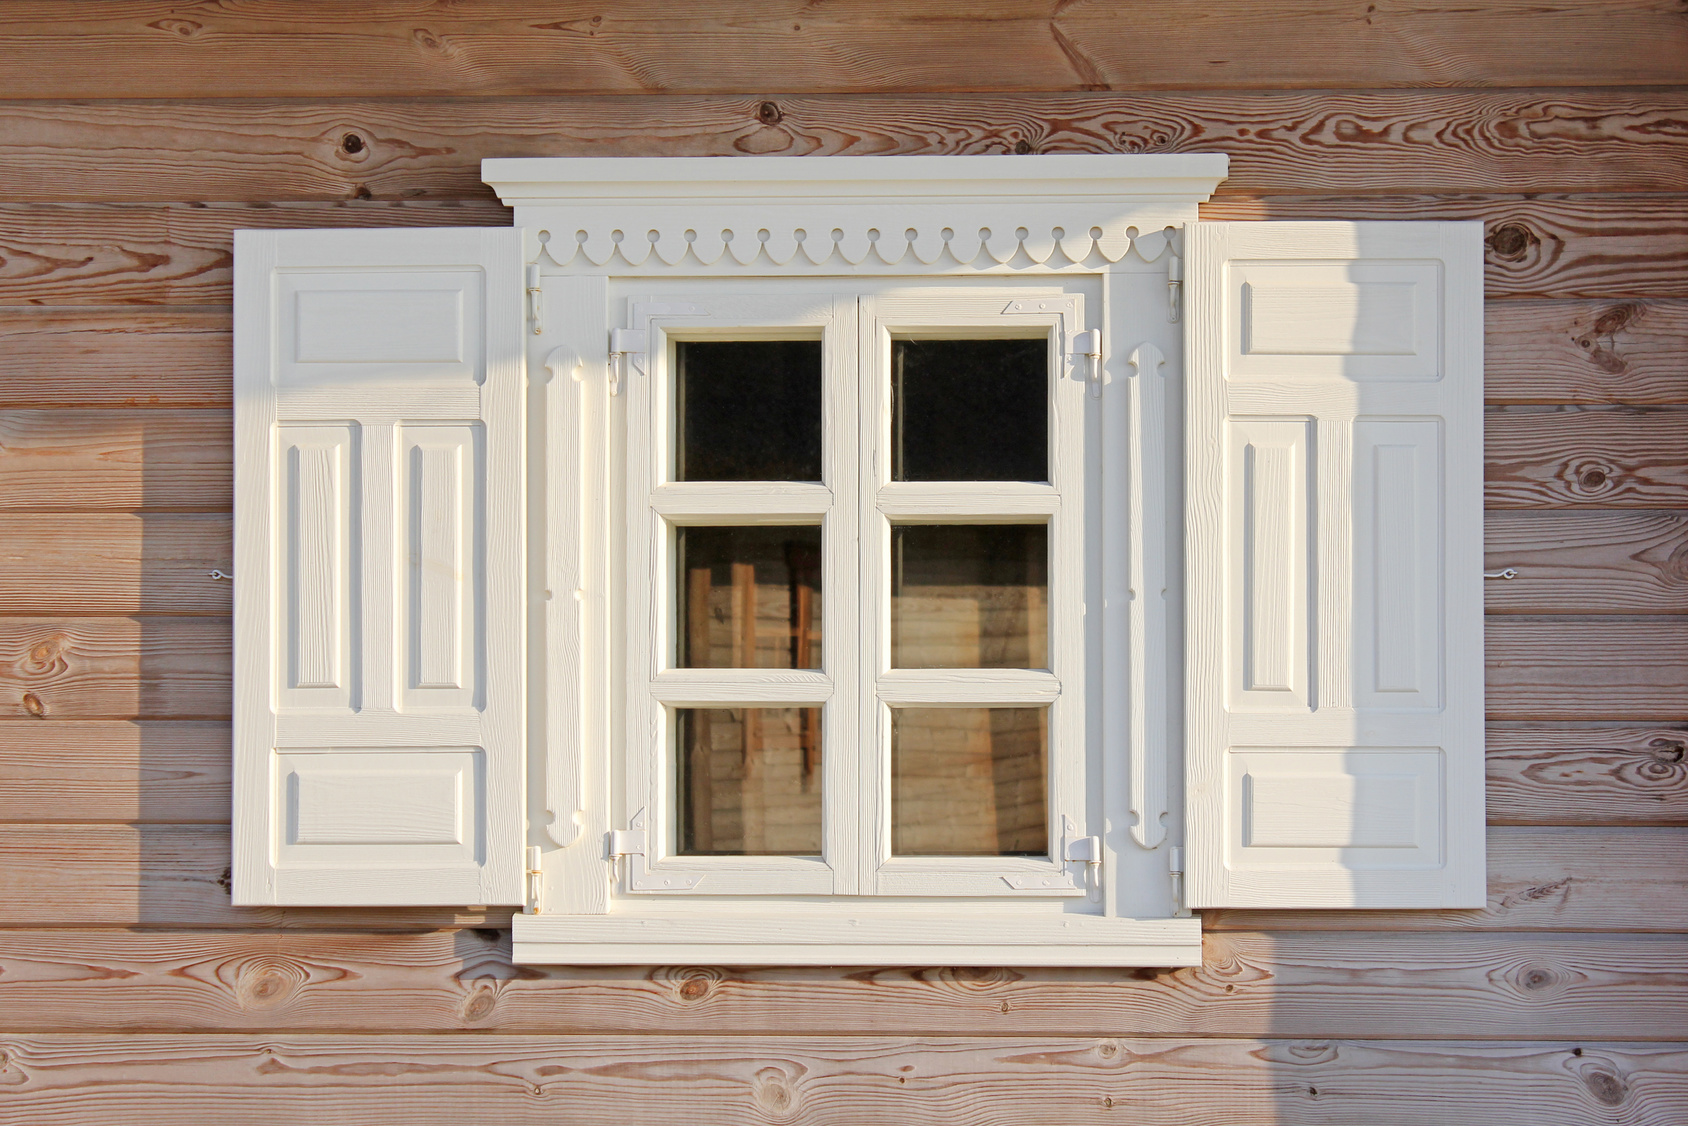 Unique How Window Shutters Can Add Style and Curb Appeal to Your Home  VL18